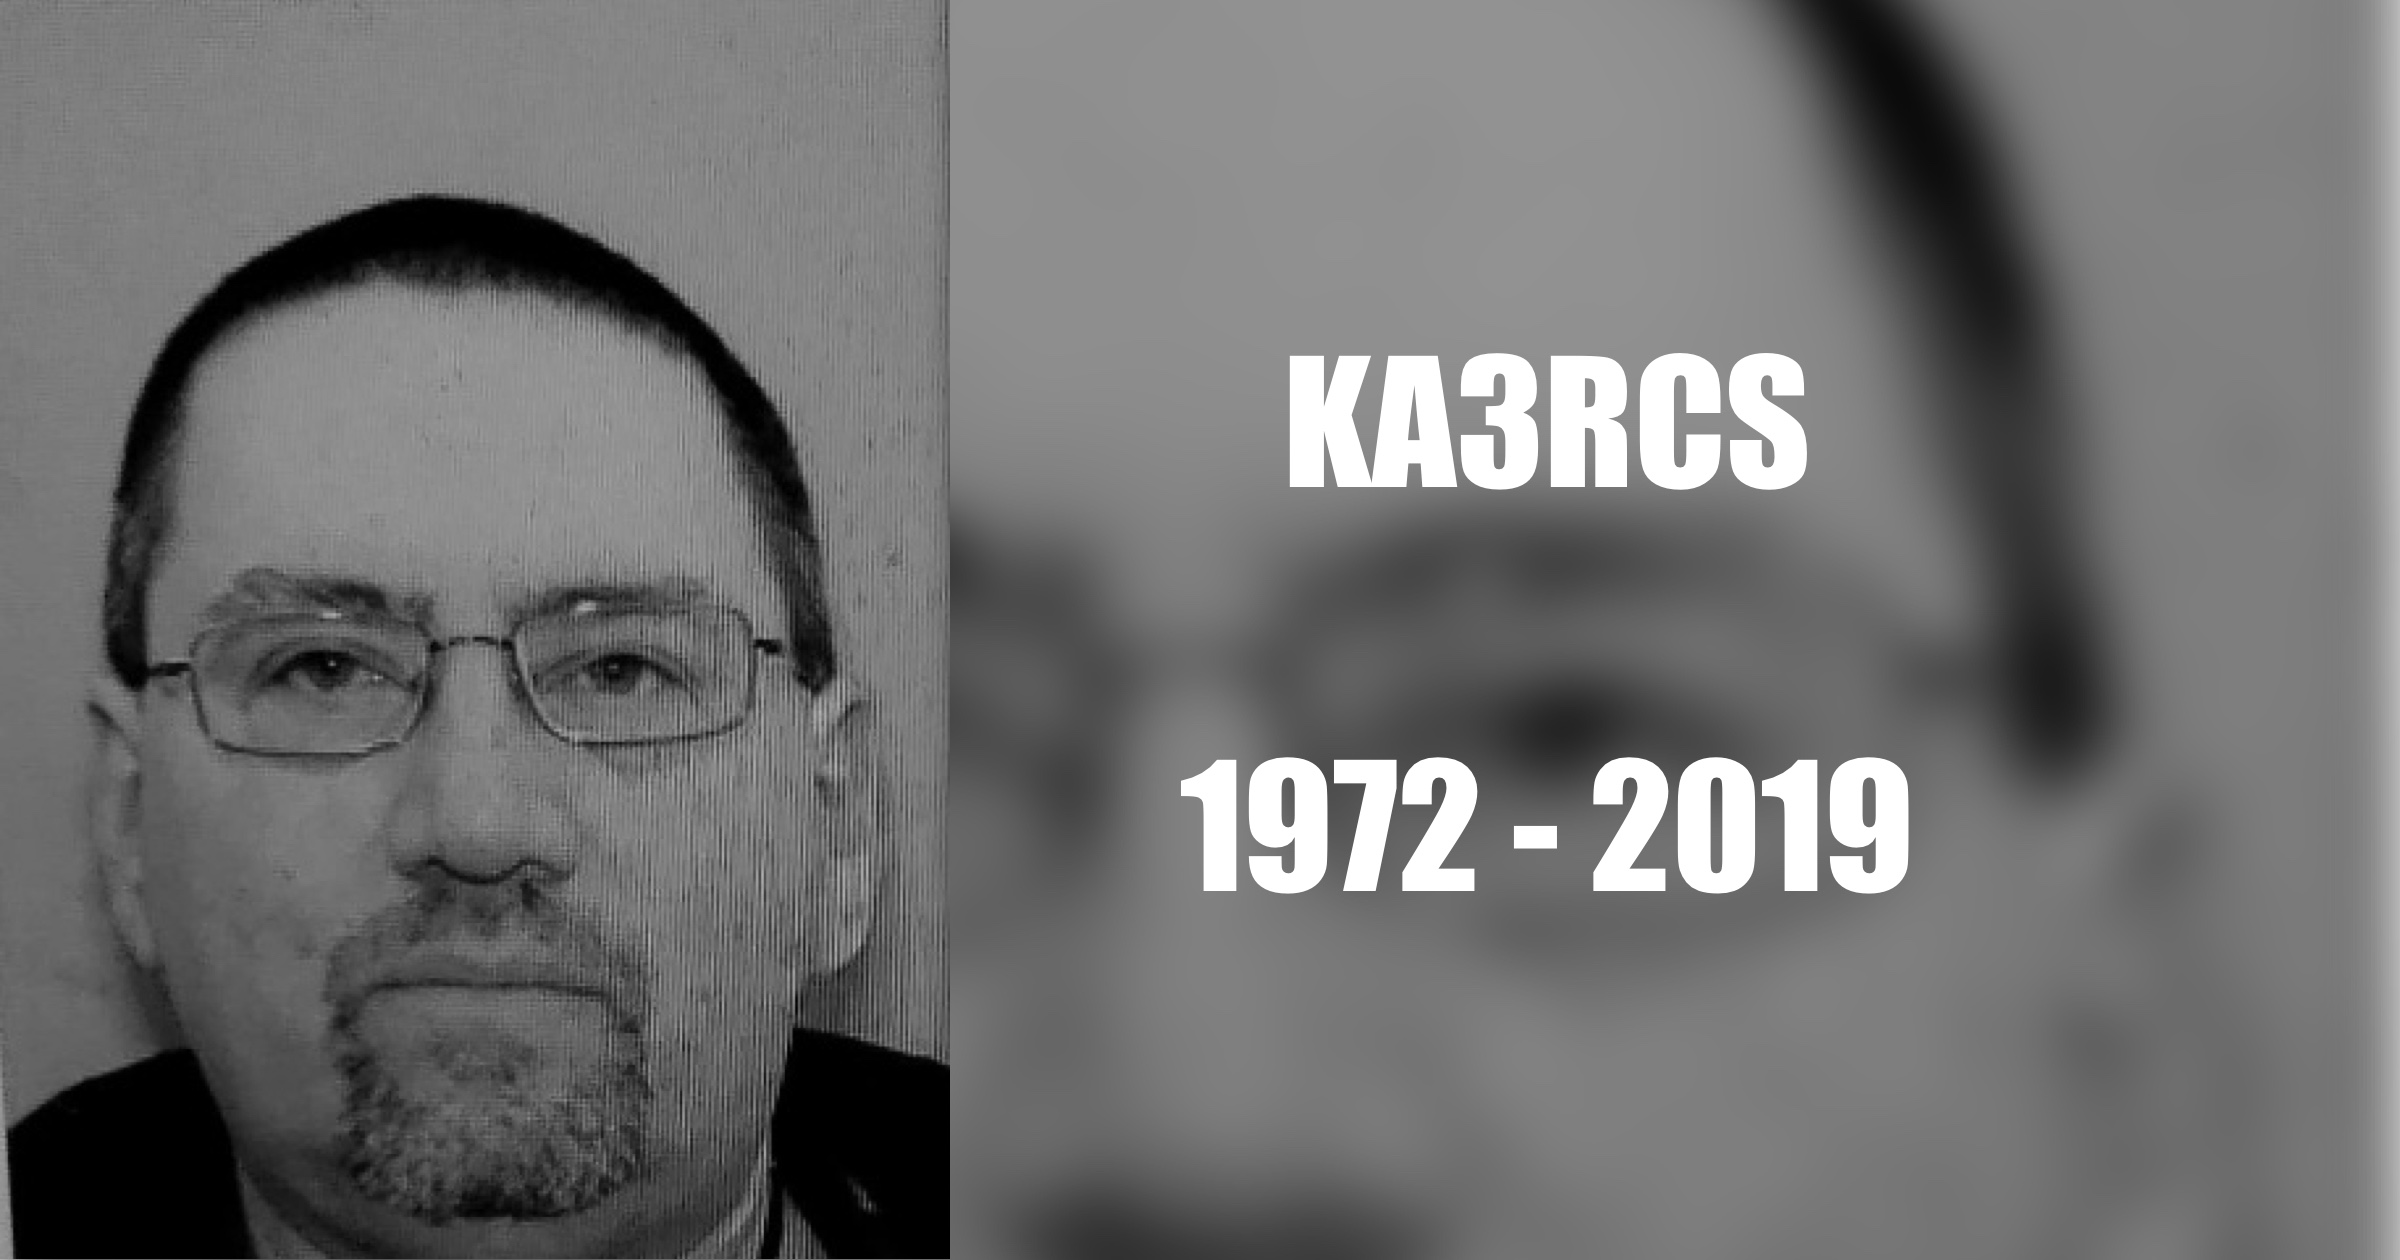 Local HAM radio operator Karl Messerschmidt found deceased at Middle Creek